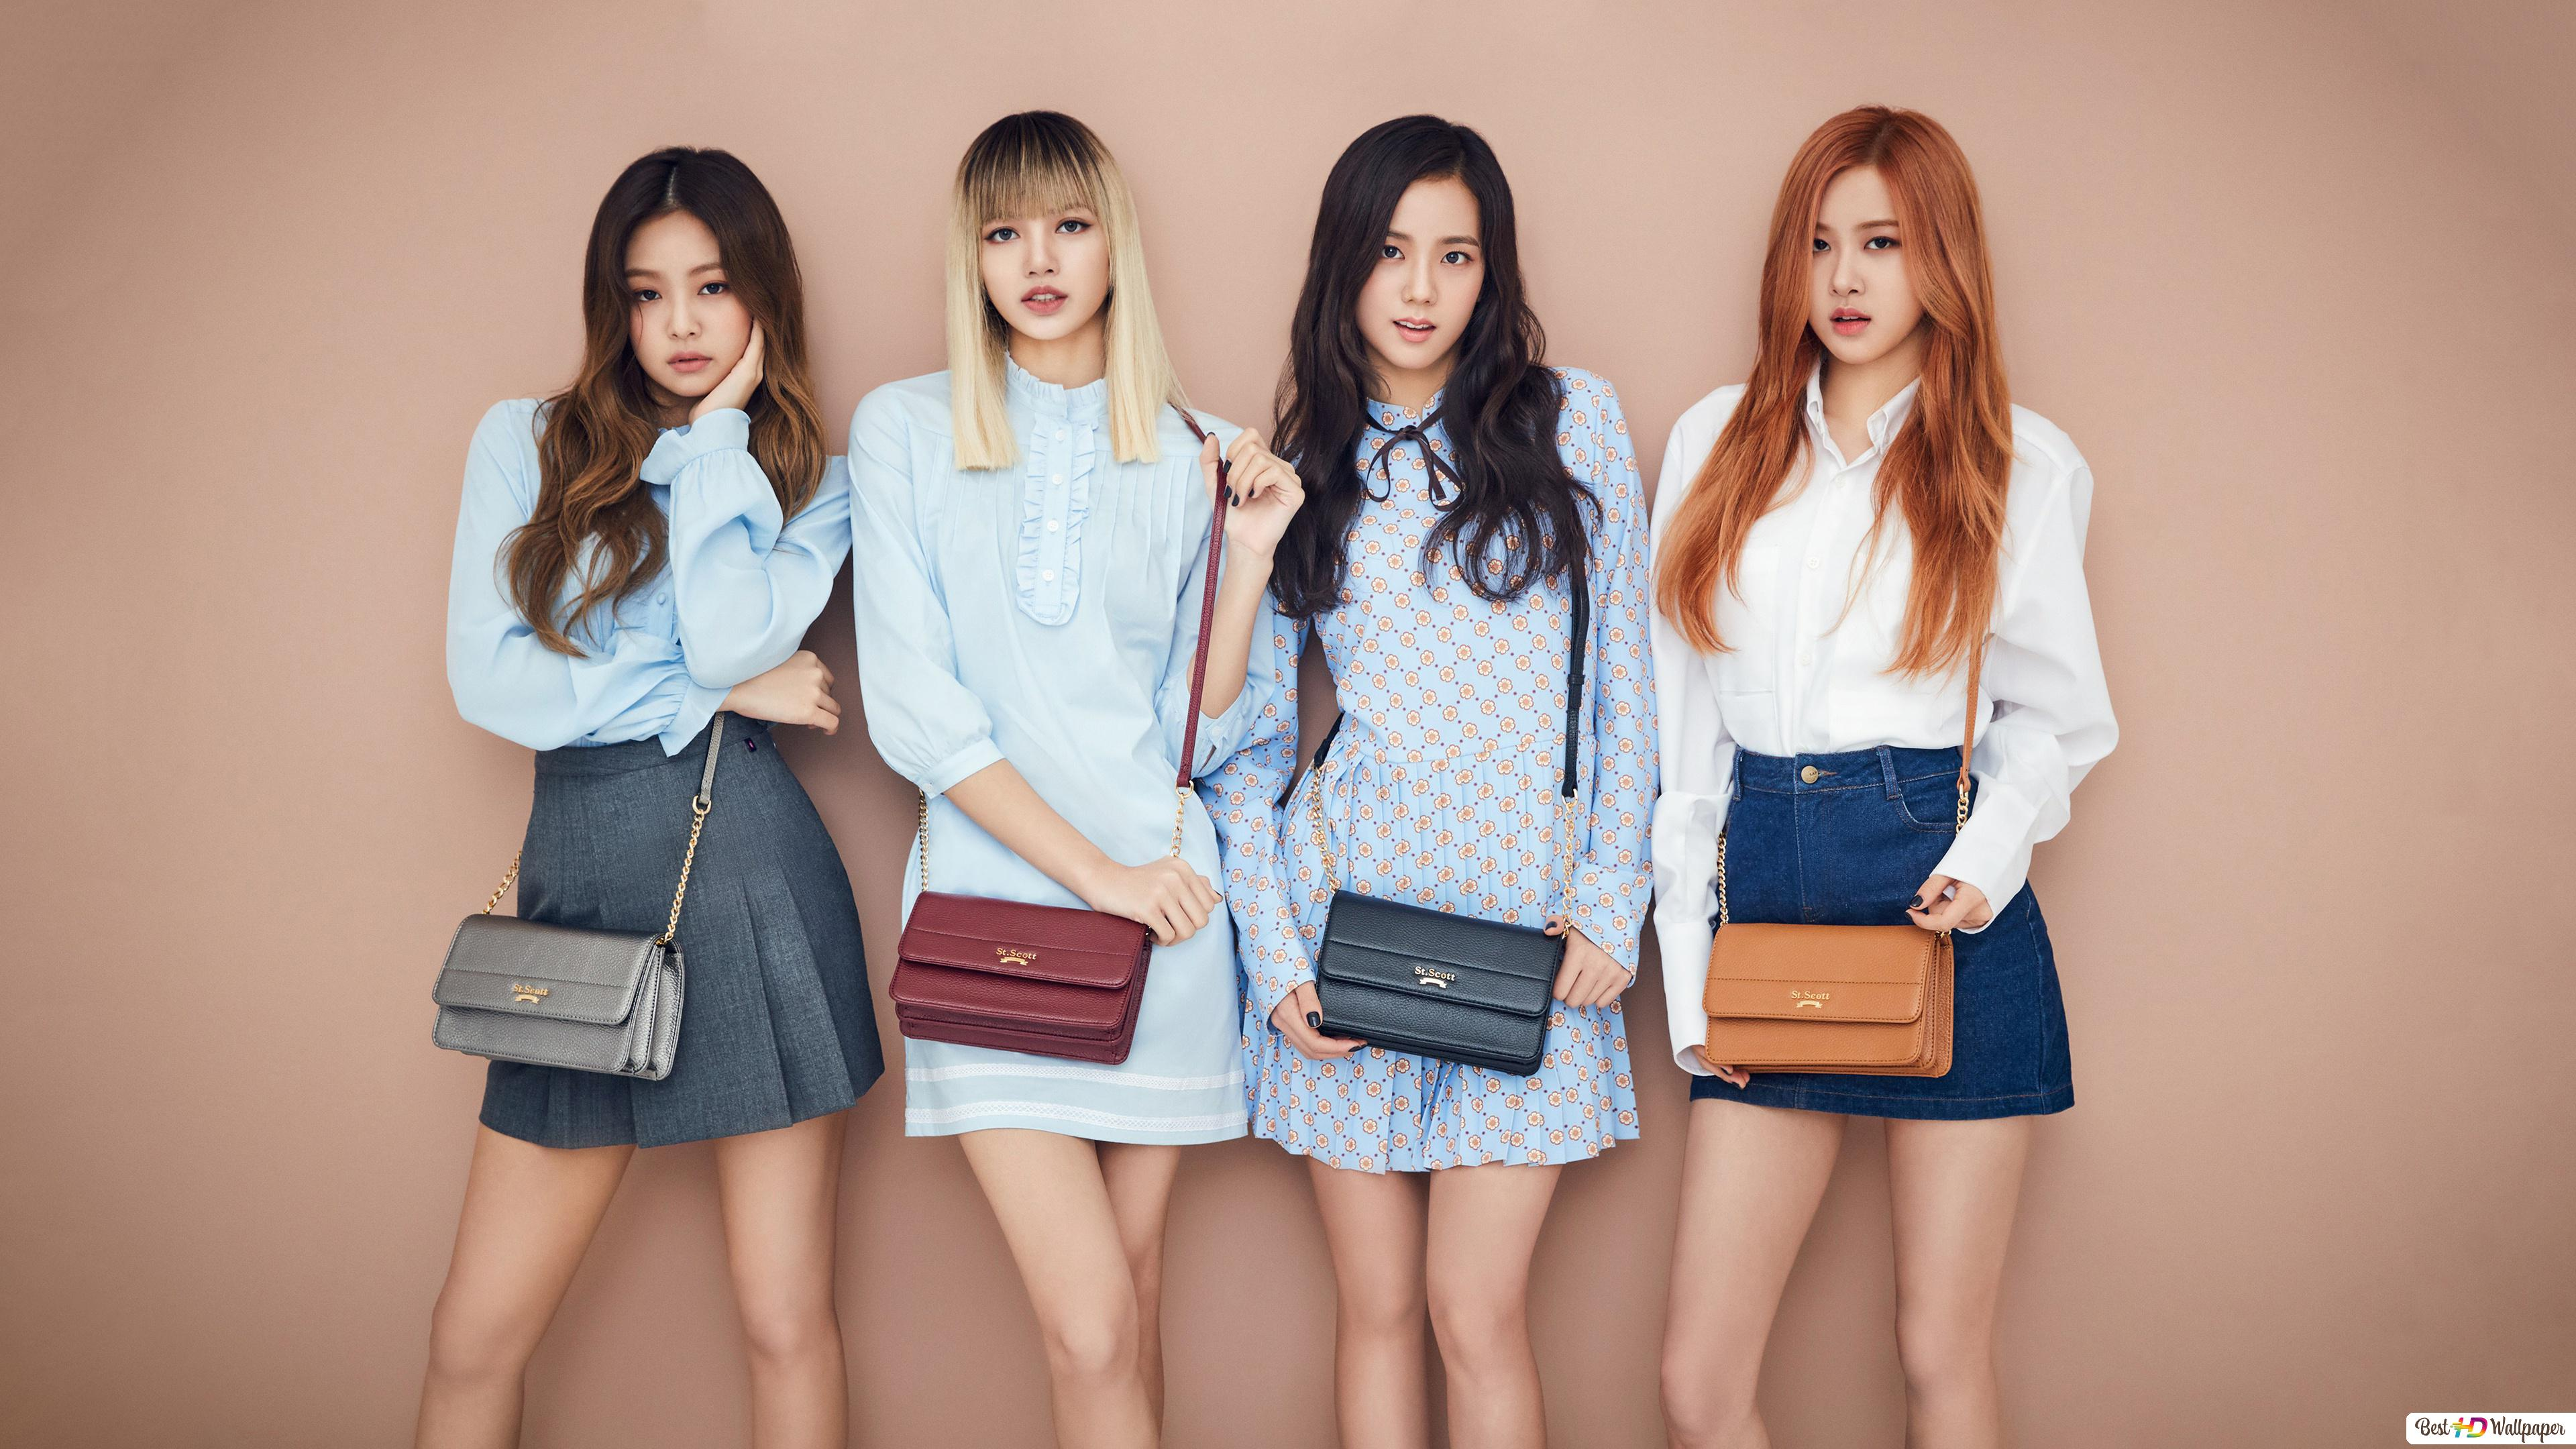 Gorgeous Blackpink Members Hd Wallpaper Download